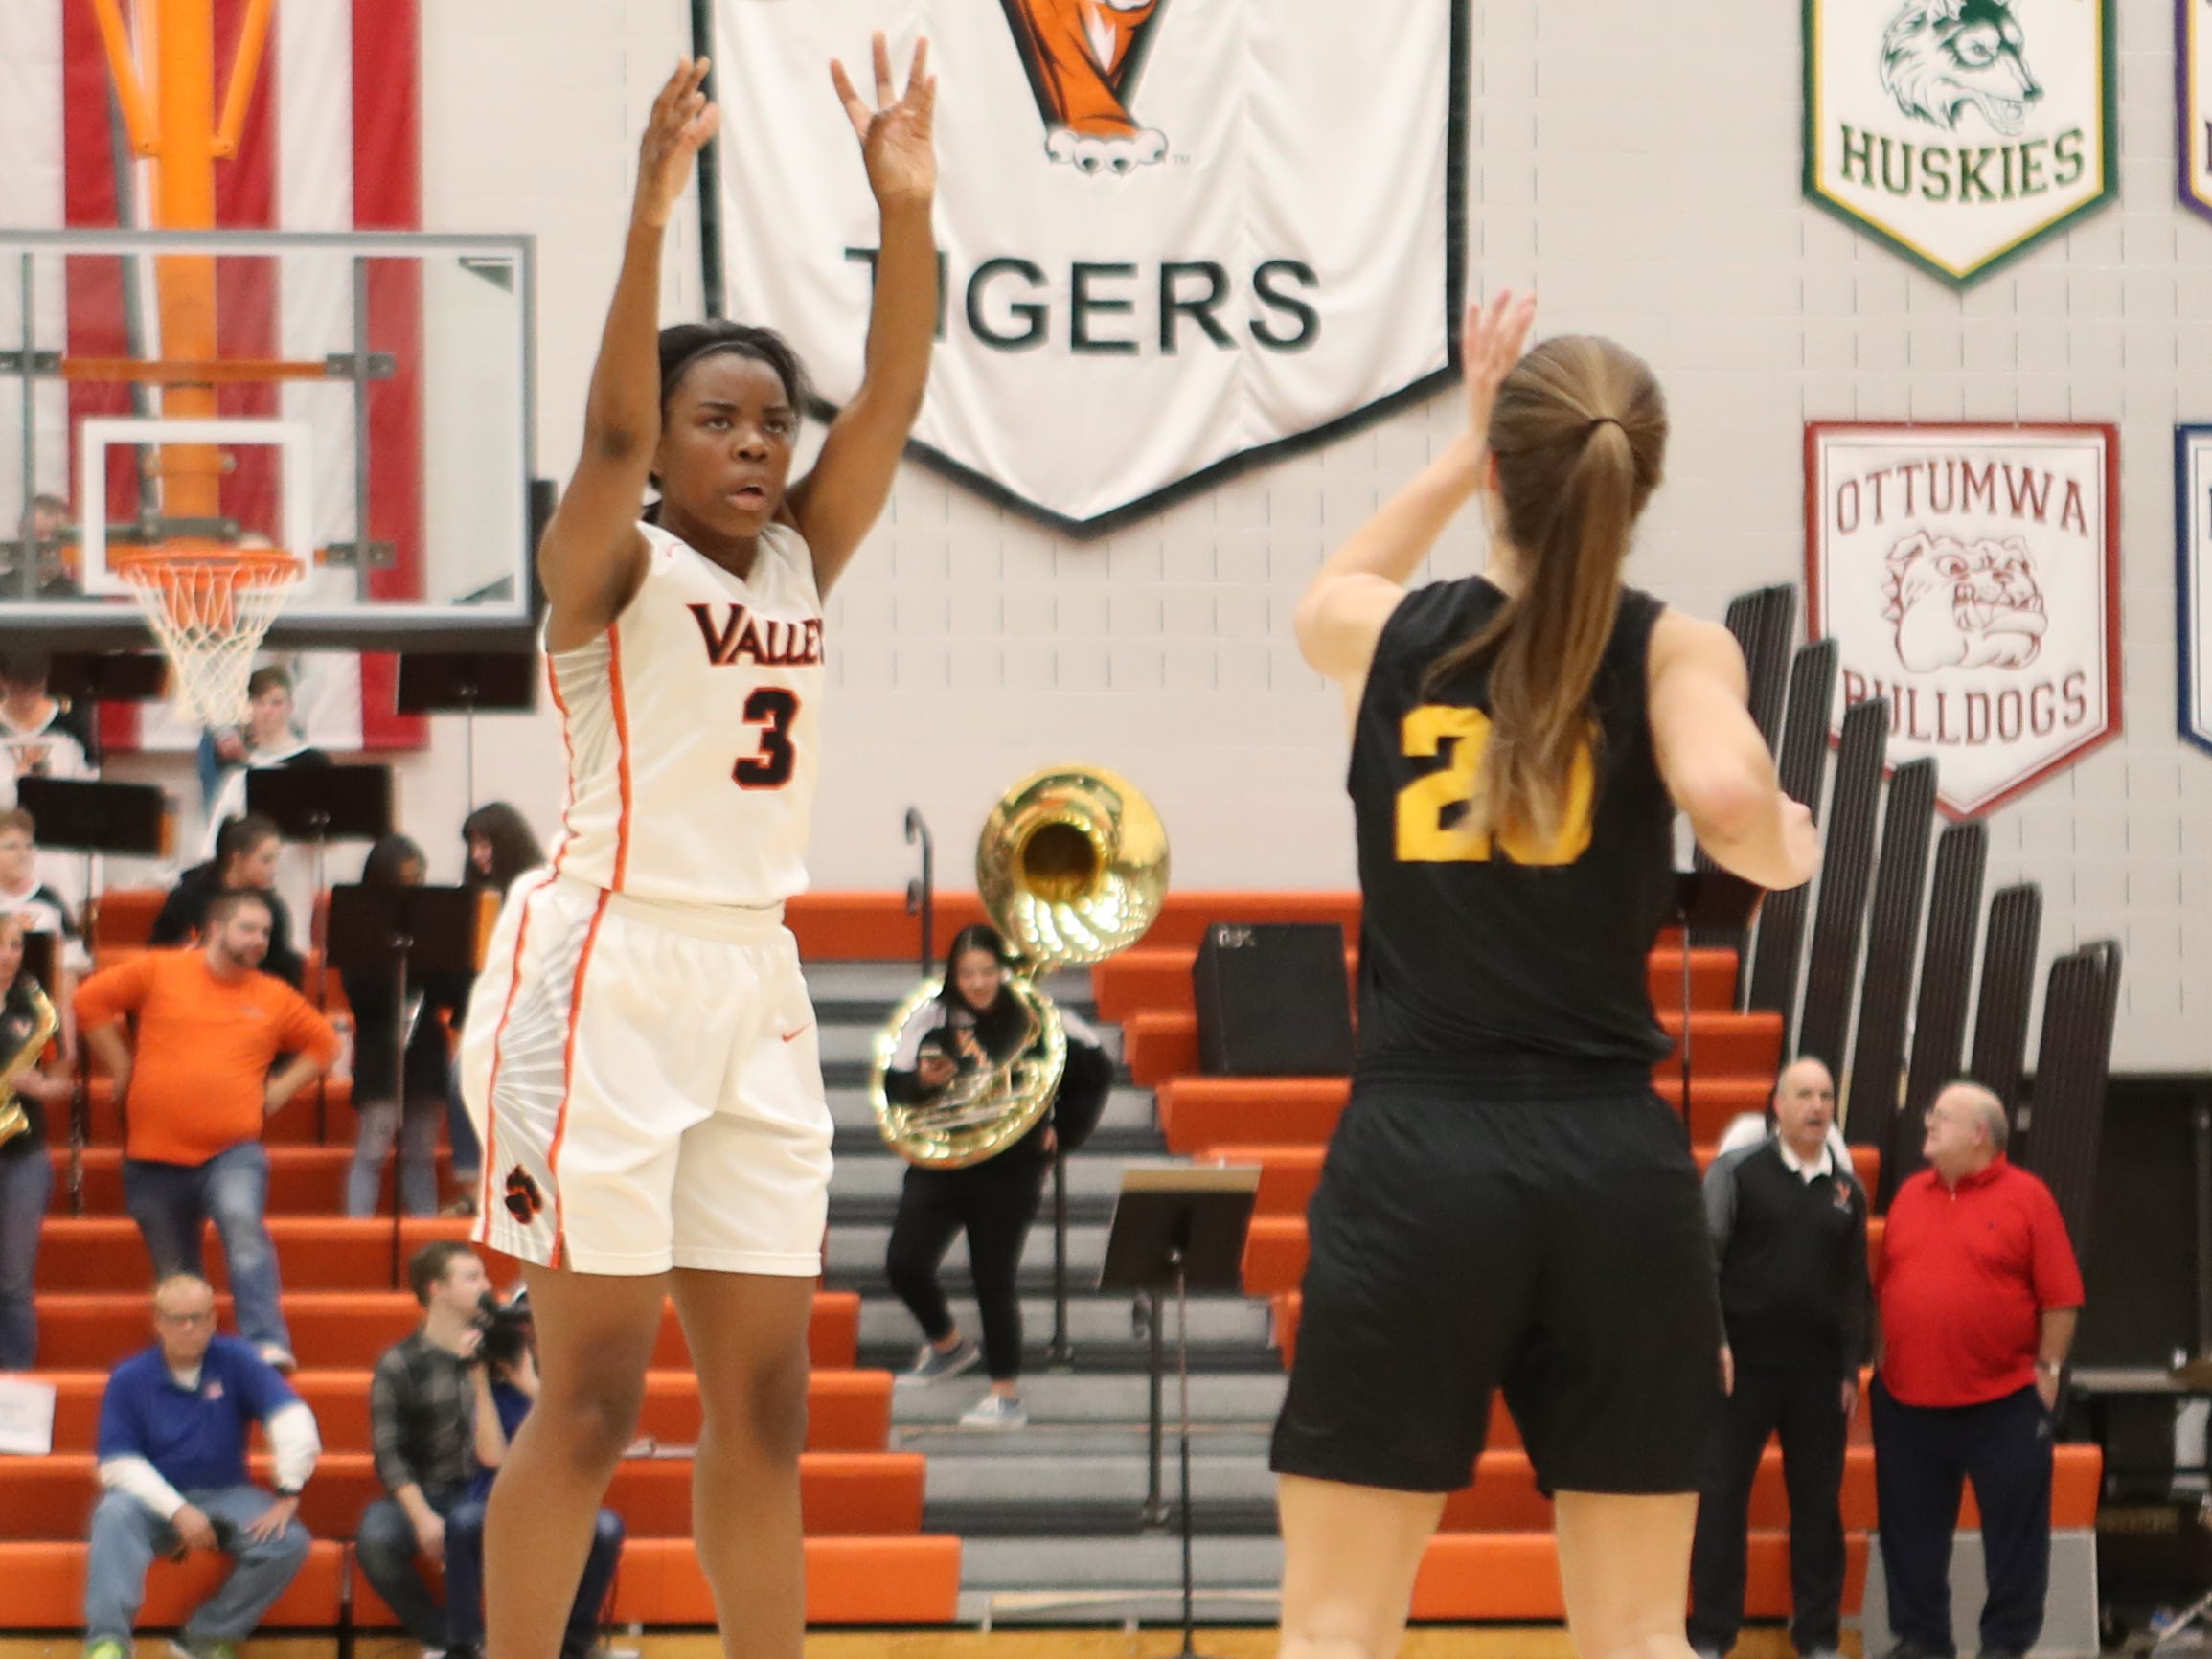 Valley Tigers' Zoe Young scores 3 of her 37 points against the Southeast Polk Rams during a girls basketball game at Valley High School on Jan. 11, 2019. The Rams won, 91-72.